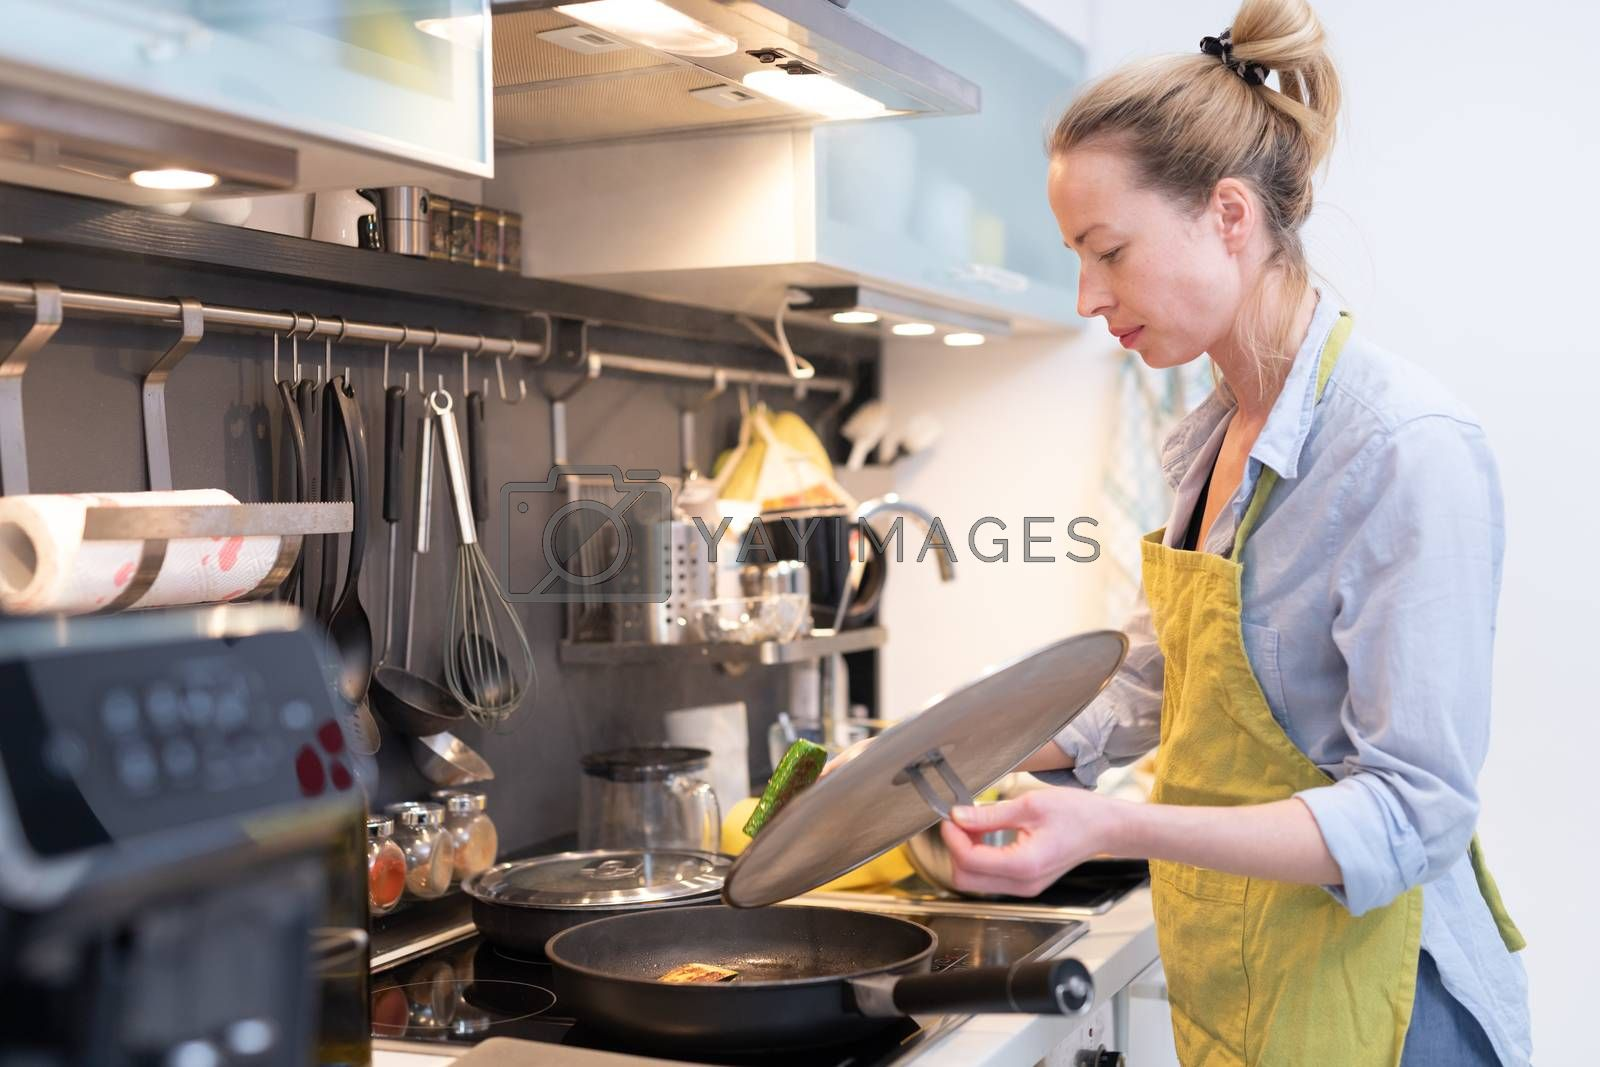 Stay at home housewife woman cooking in kitchen, stir frying dish in a saucepan, preparing food for family dinner. Blonde caucasian model in her 30is, real cooking not looking in camera.